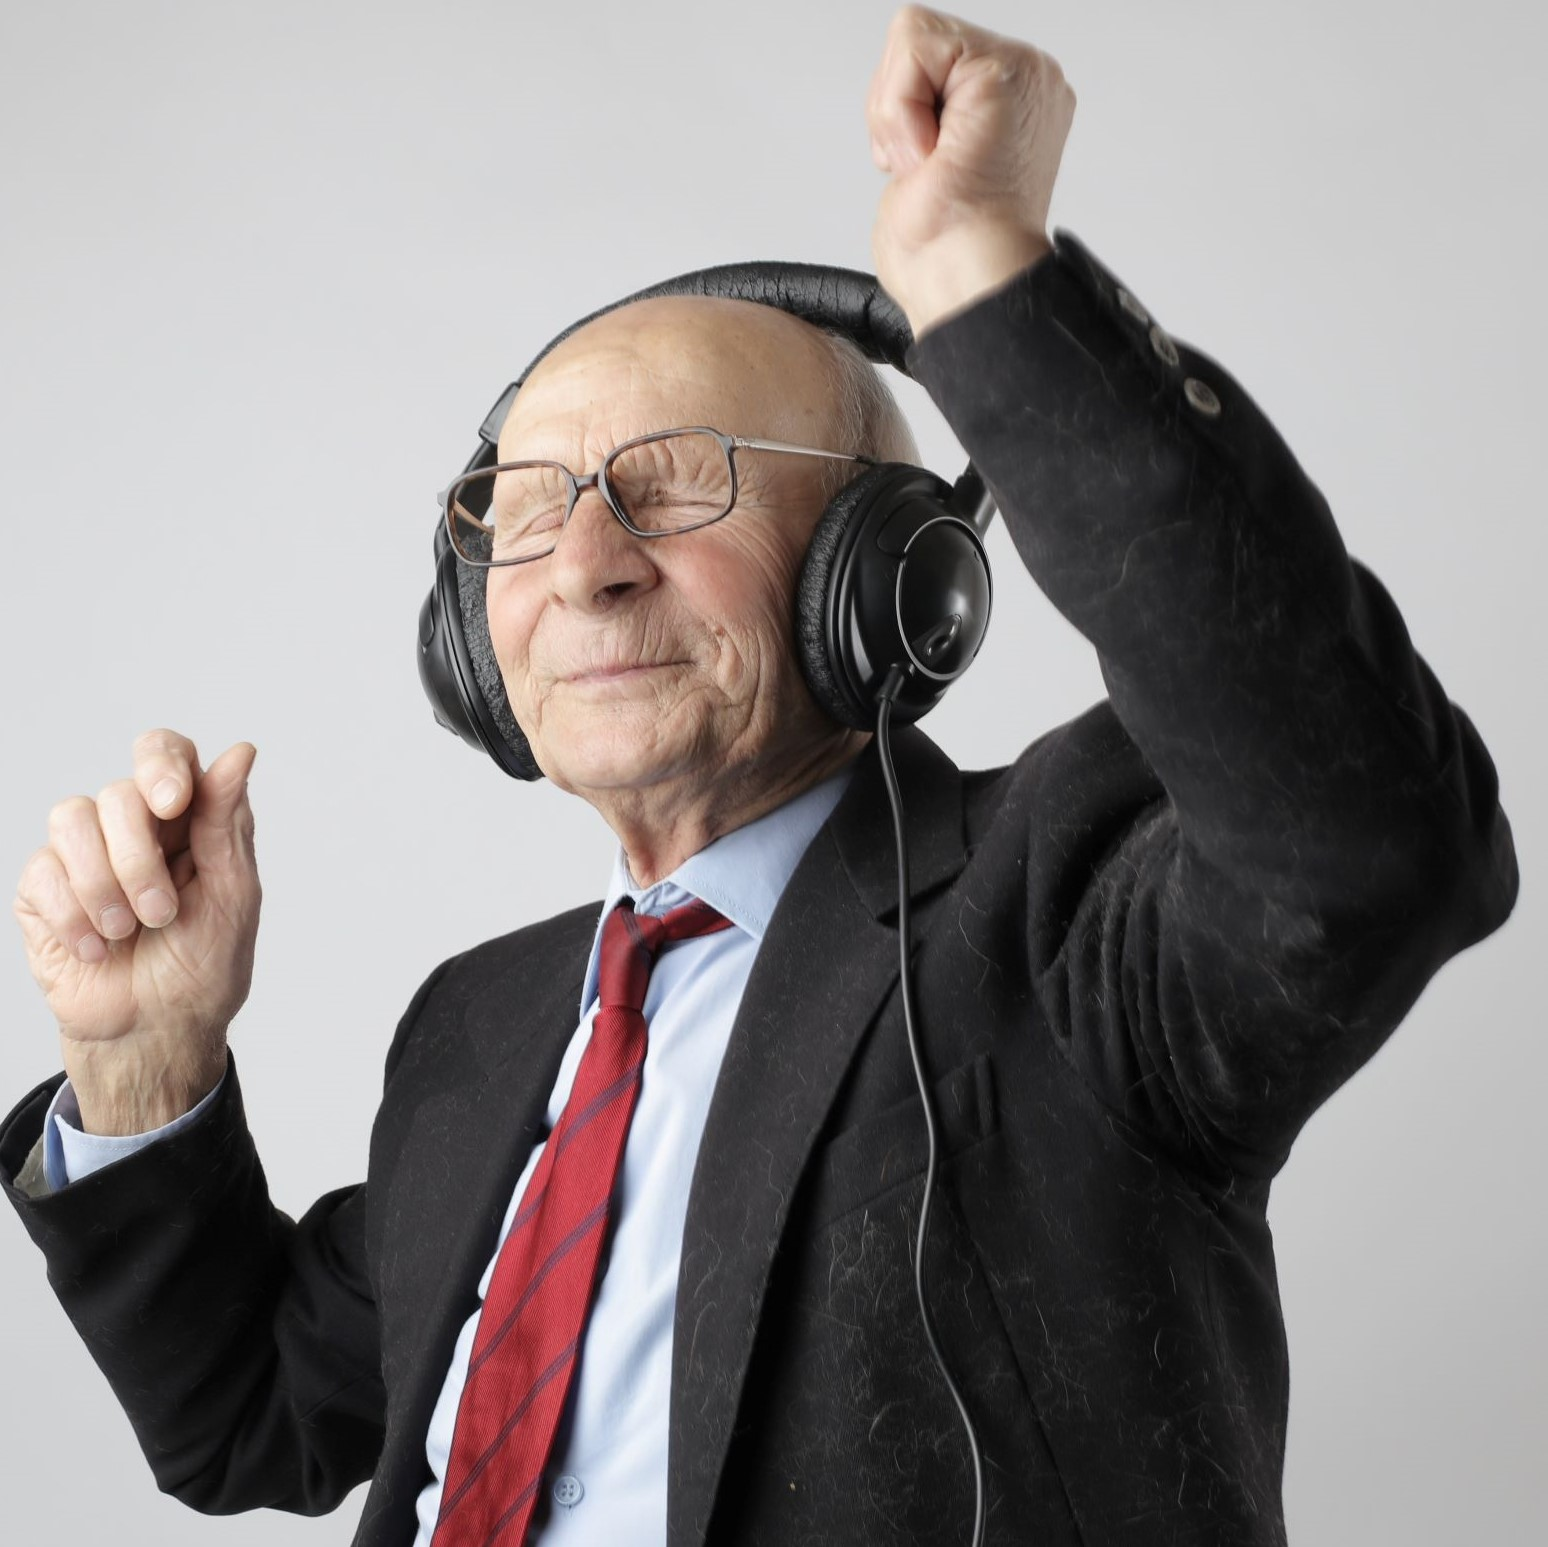 A senior man dancing because it's good for his heart